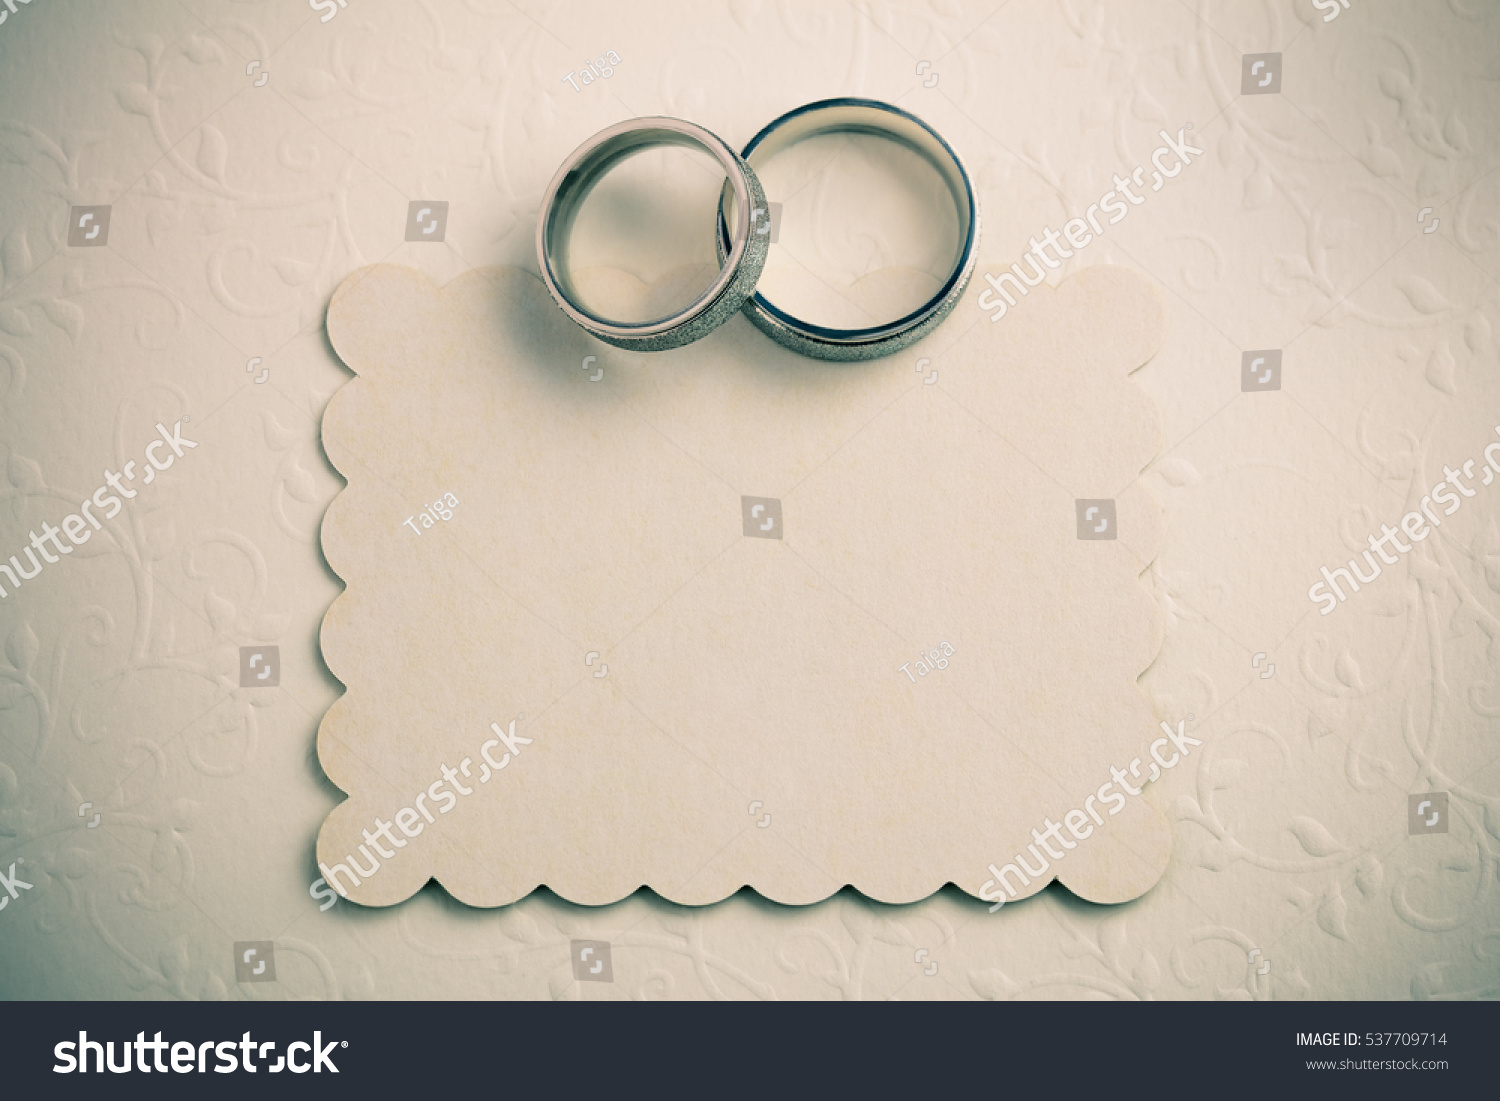 vintage wedding background pair wedding rings stock photo edit now 537709714 https www shutterstock com image photo vintage wedding background pair rings invite 537709714